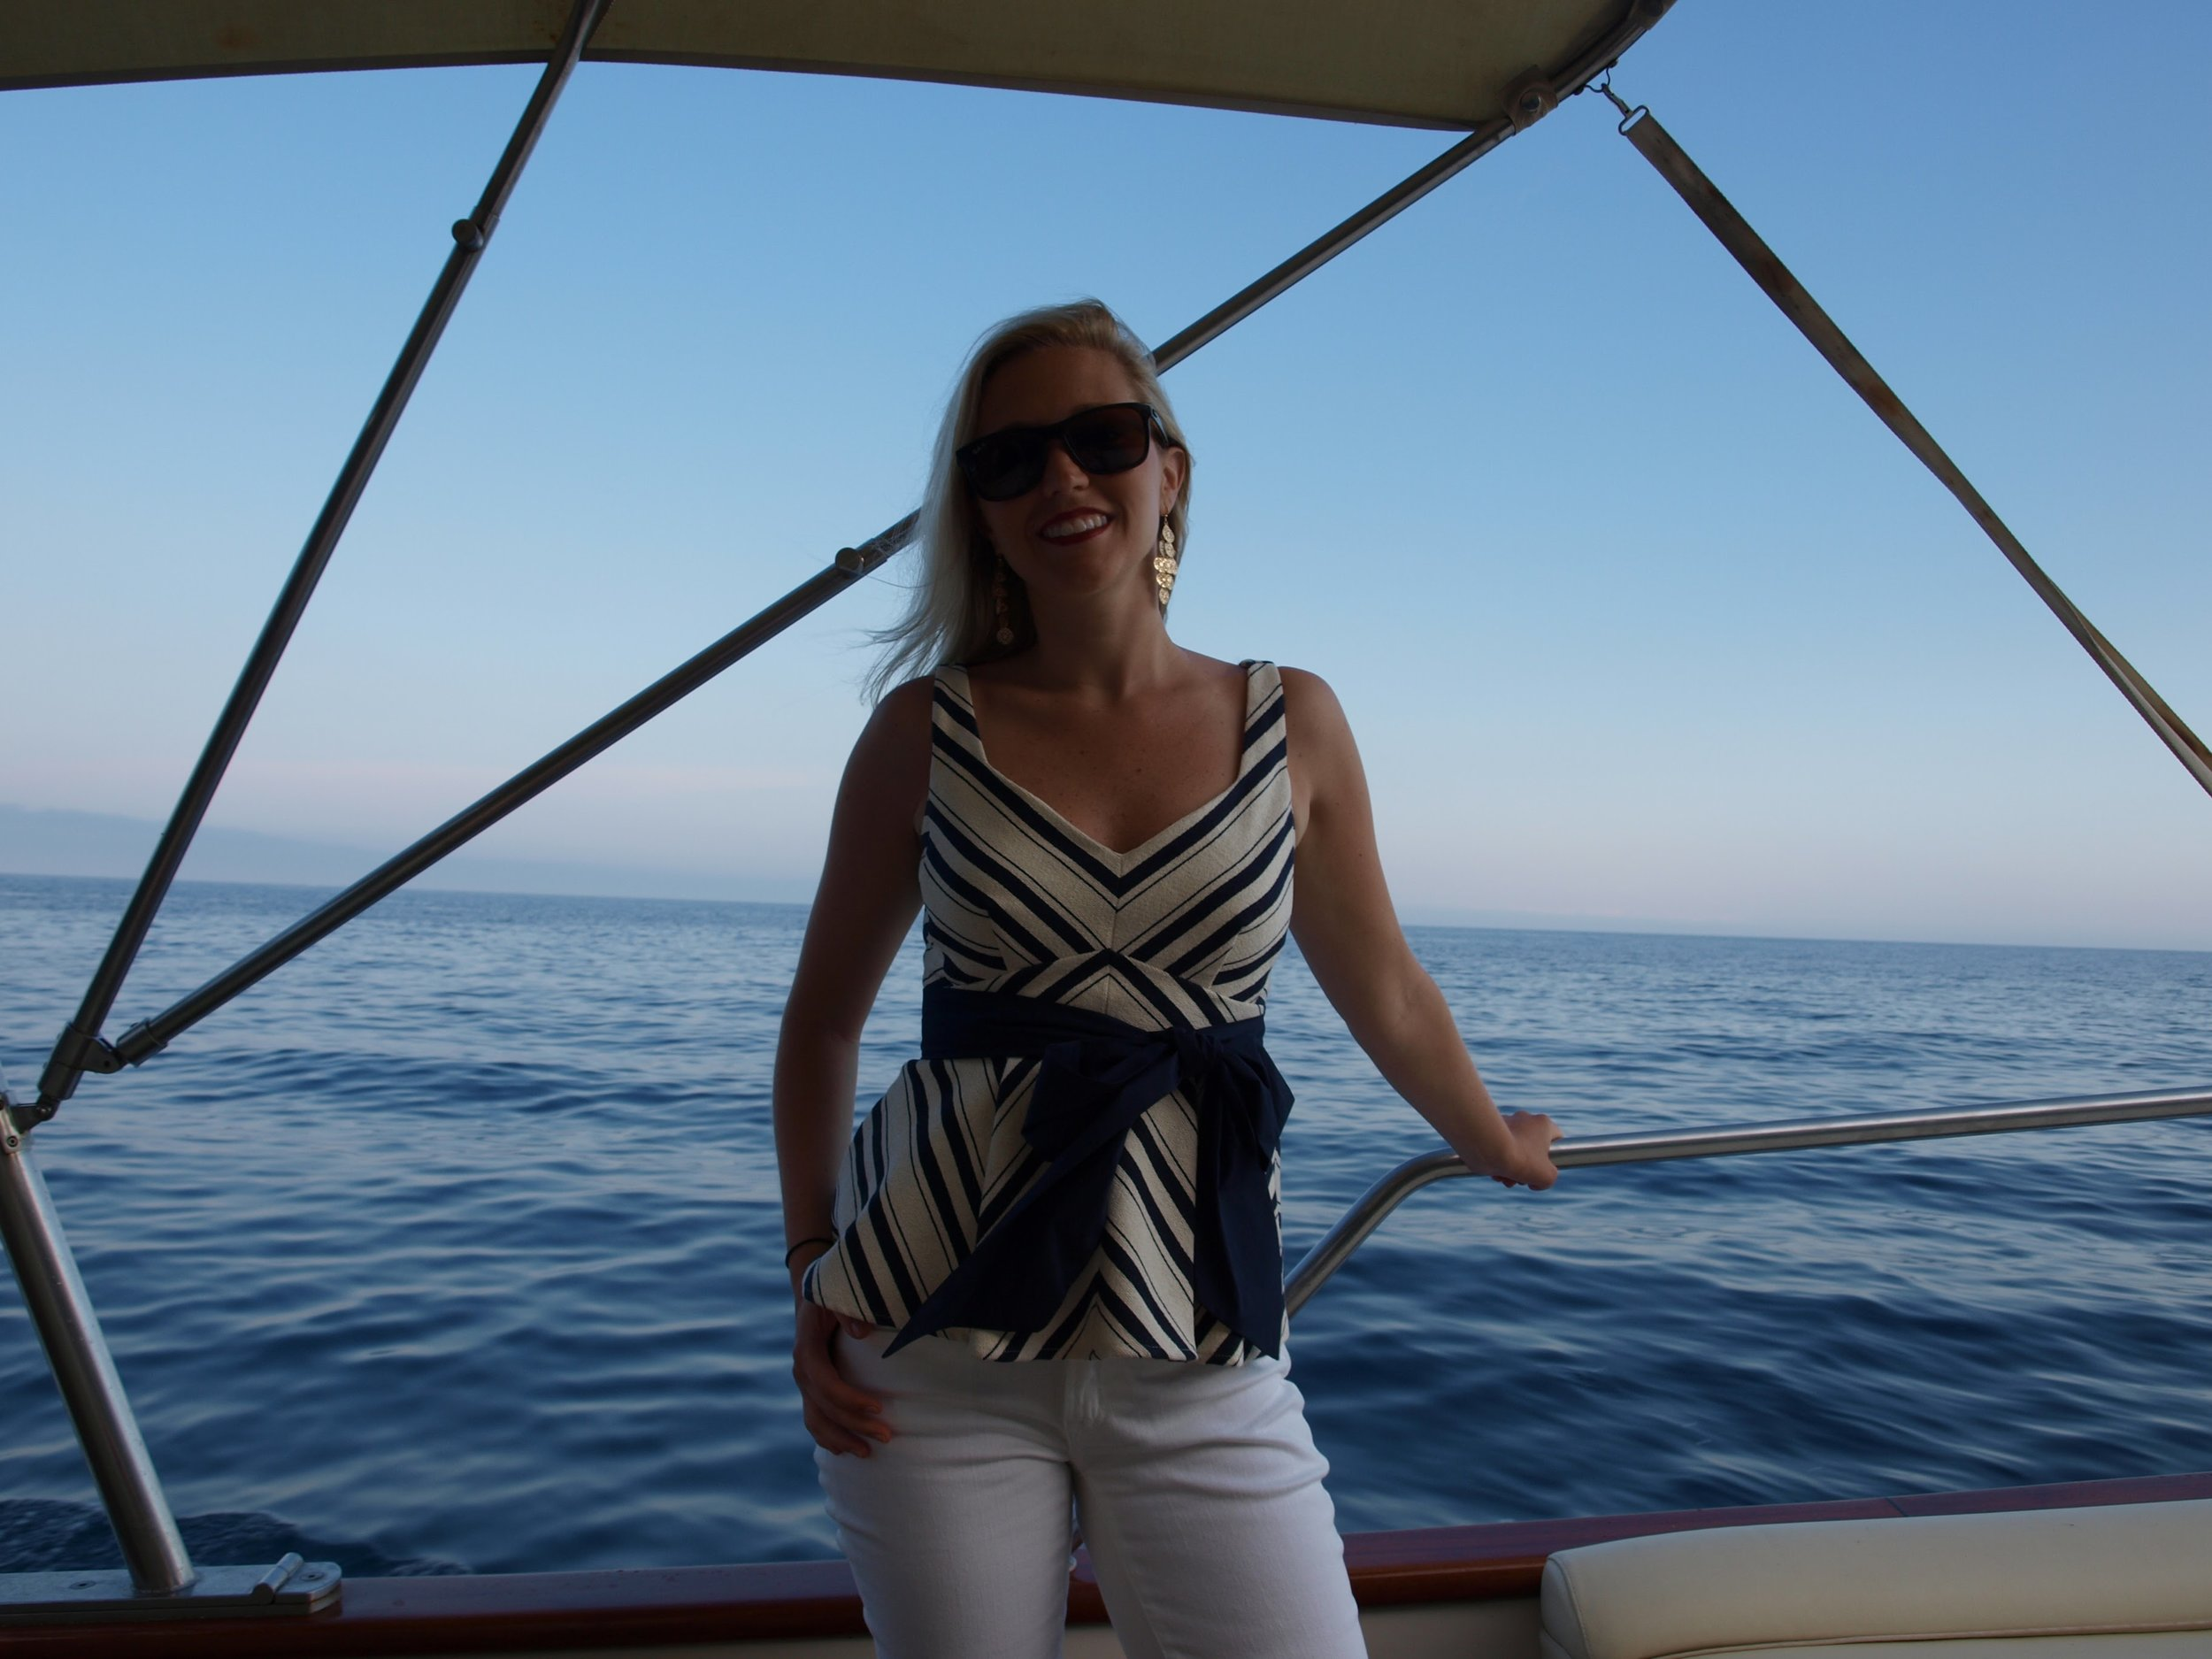 Aboard Casa Angelina's private boat to have dinner in Capri